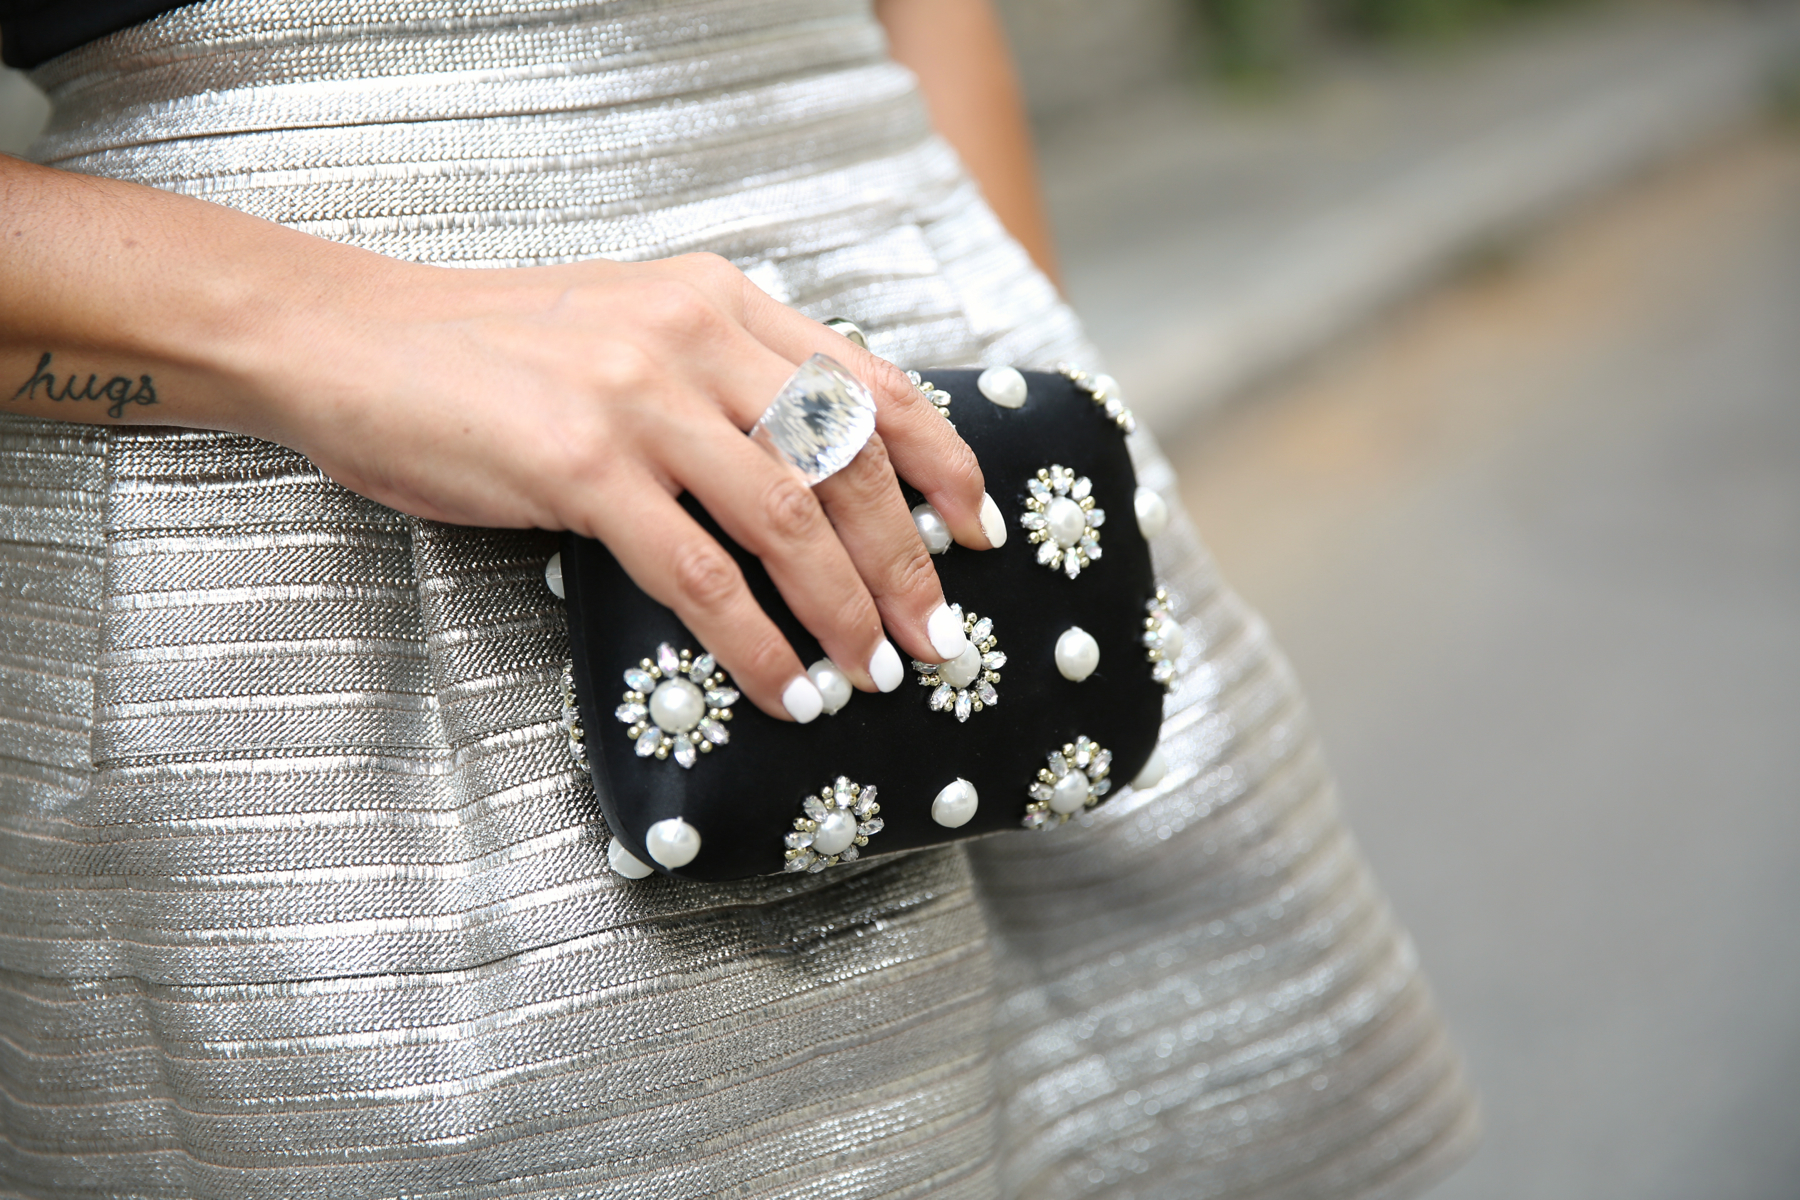 trendy_taste-look-outfit-street_style-blog-blogger-fashion_spain-moda_españa-saint_laurent-charol-crop_top-falda_plateada-silver_skirt-swarovski-wedding-boda-ocasiones_especiales-4